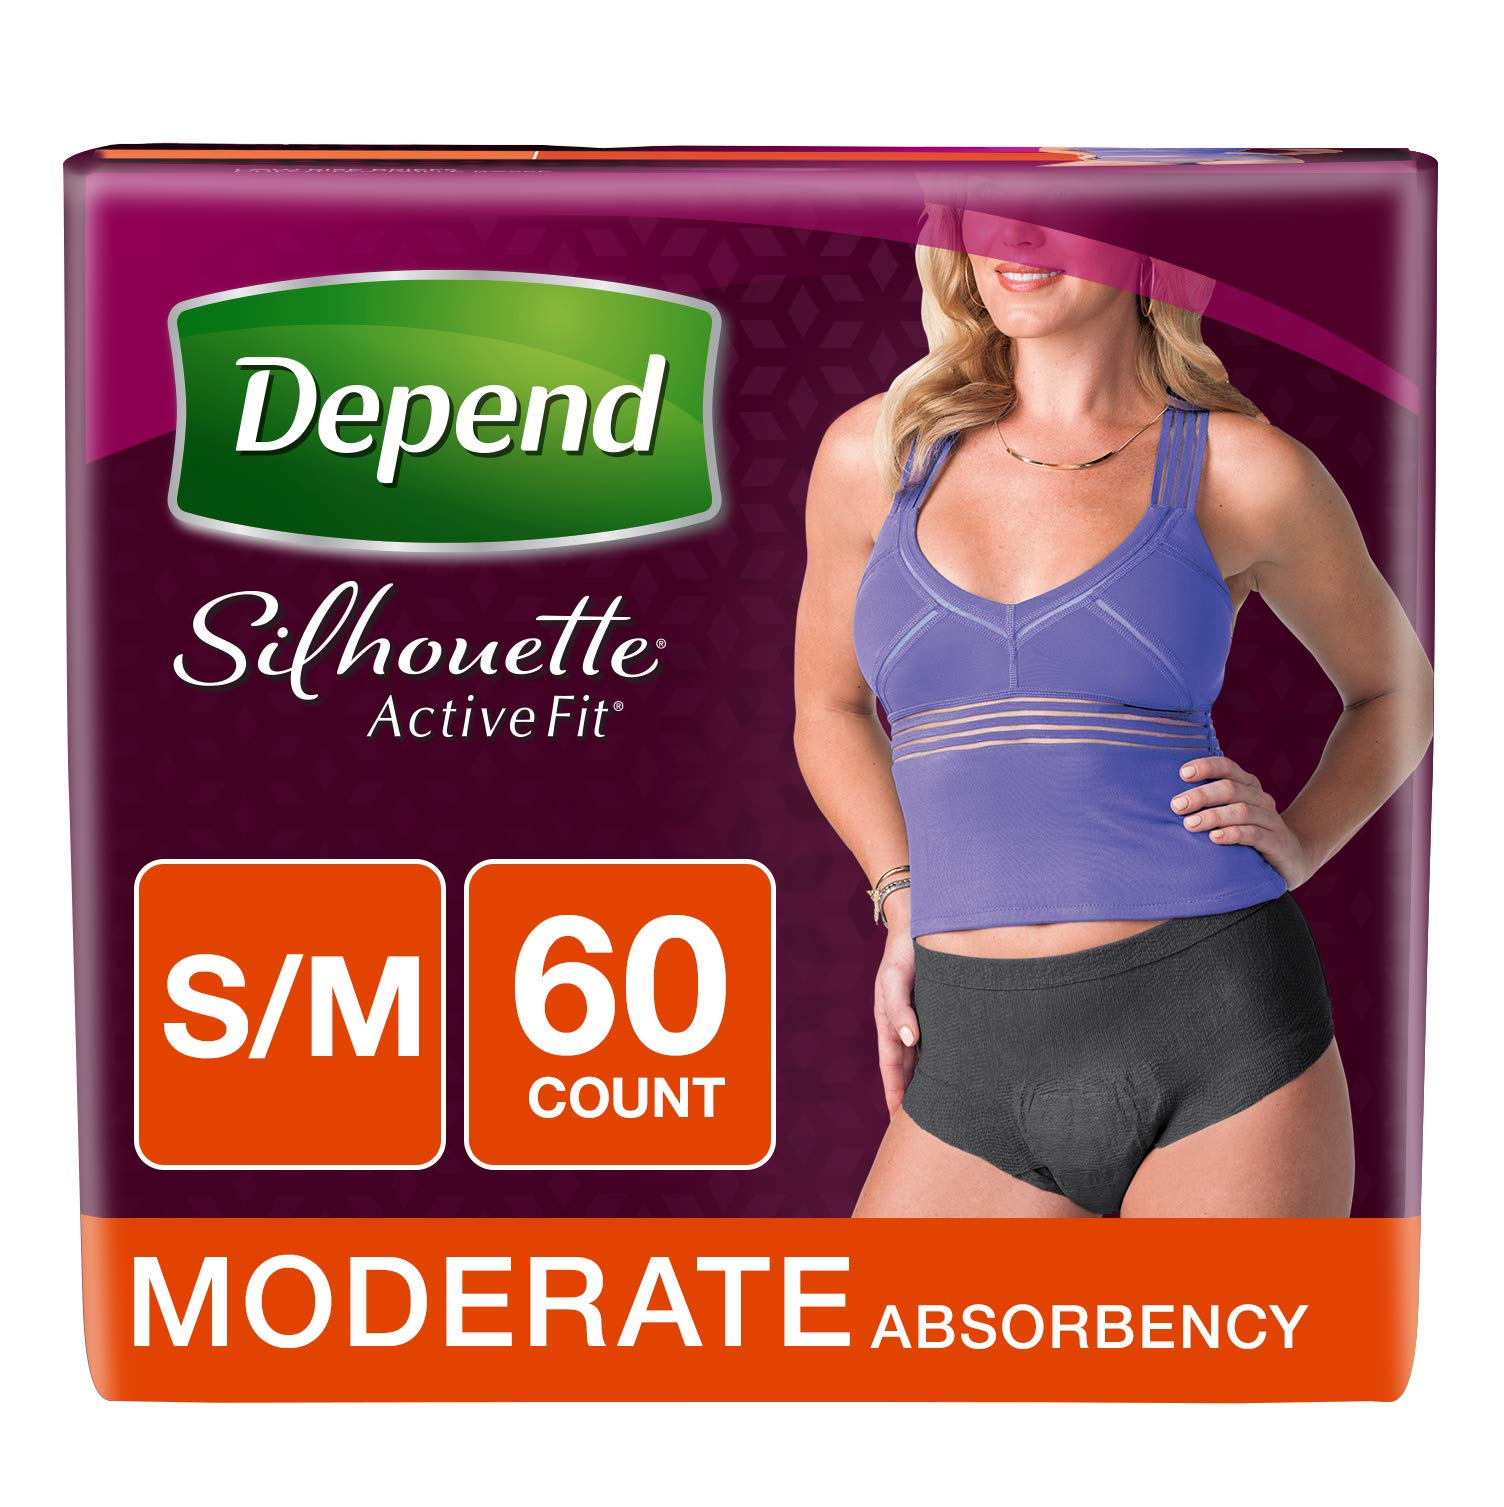 Depend Silhouette Active Fit Adult Diapers for Women, Moderate Absorbency, S/M, Black, 60 Count